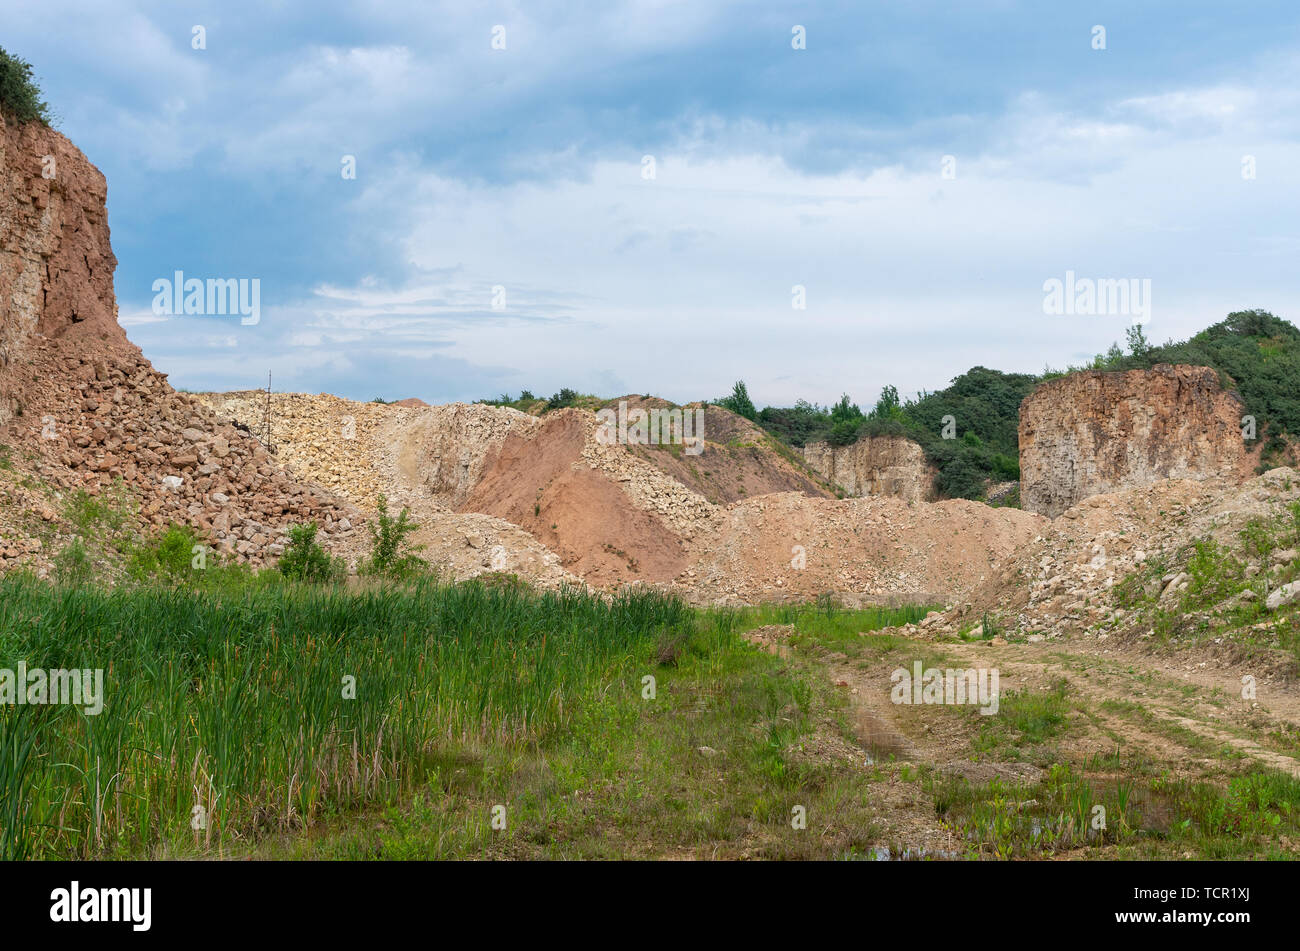 Limestone mining for cement plant somewhere in Lithuania